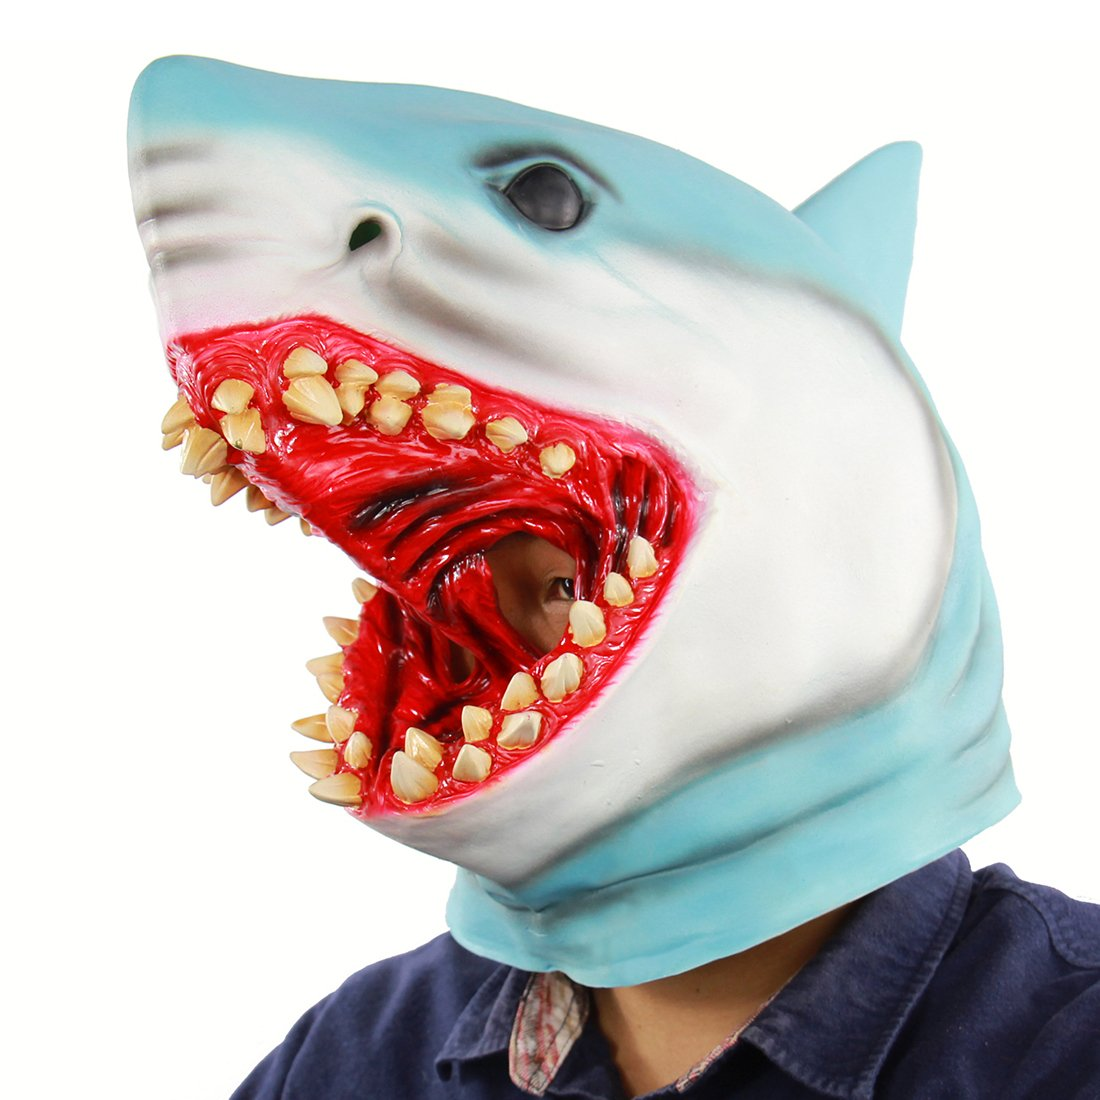 Hophen Halloween Horror Shark Animal Cosplay Props Scary Bloody Great White Latex Masks For Masquerade Parties,Carnival Decorations